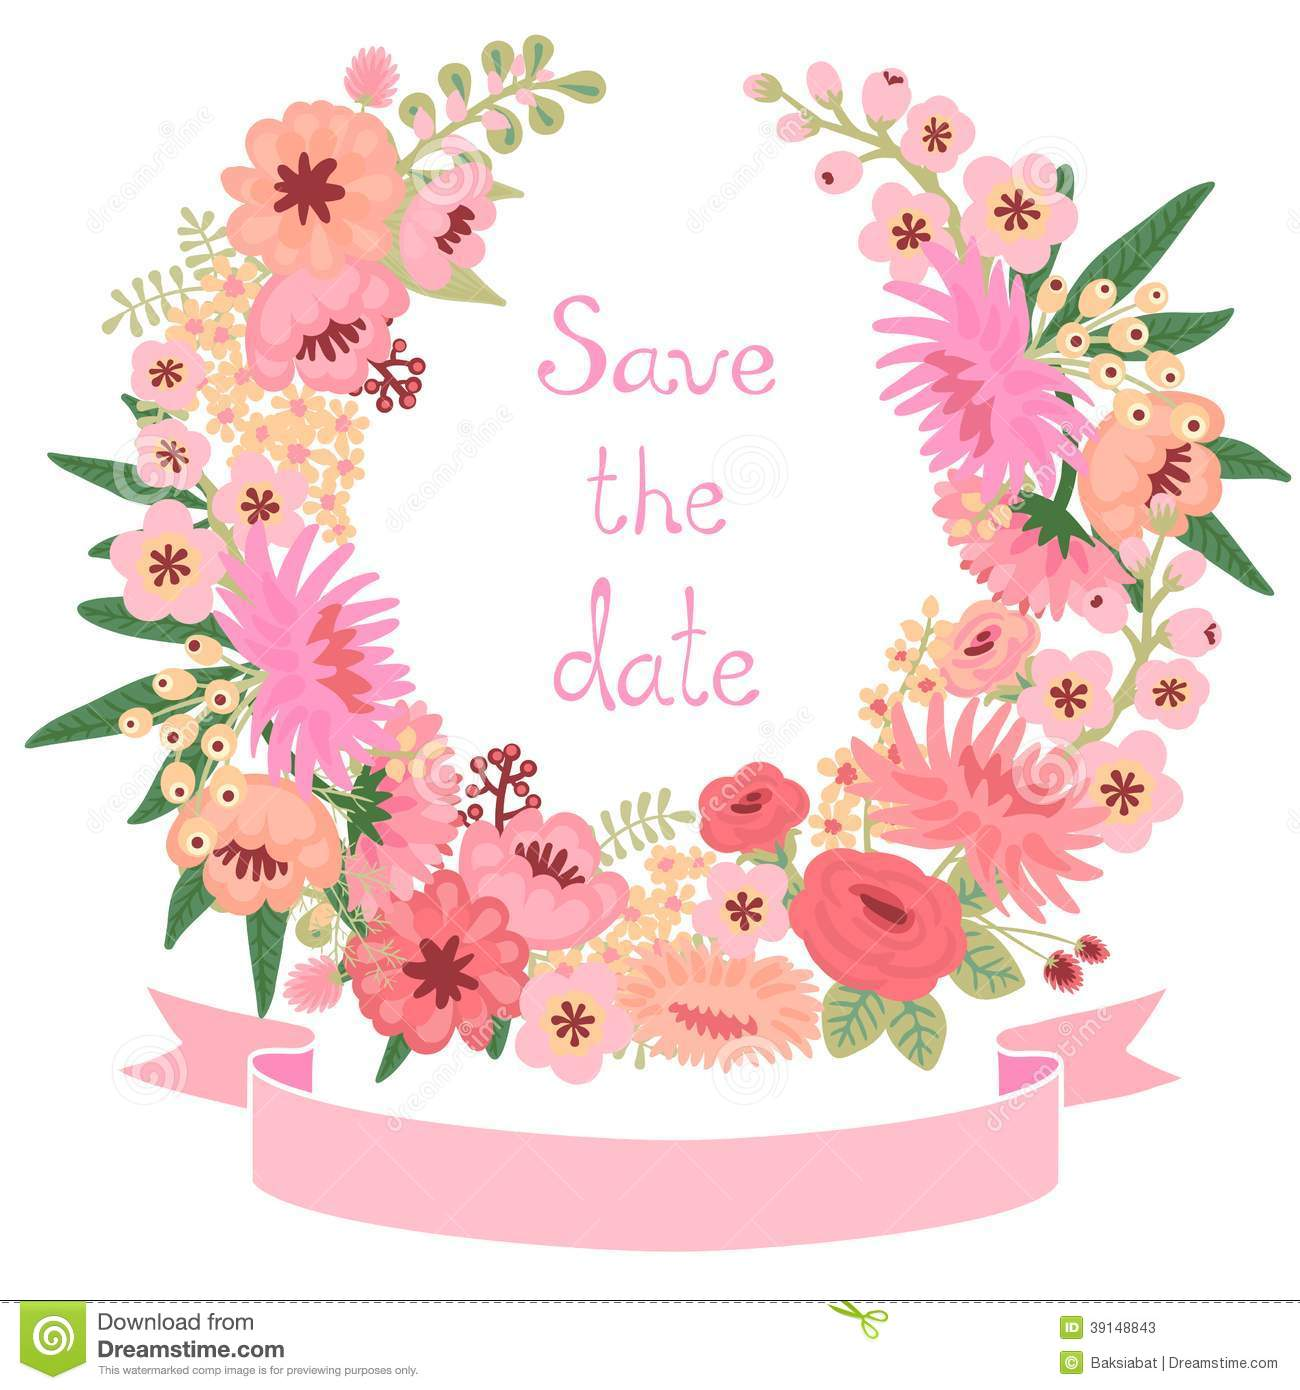 Vintage card with floral wreath. Save the date.